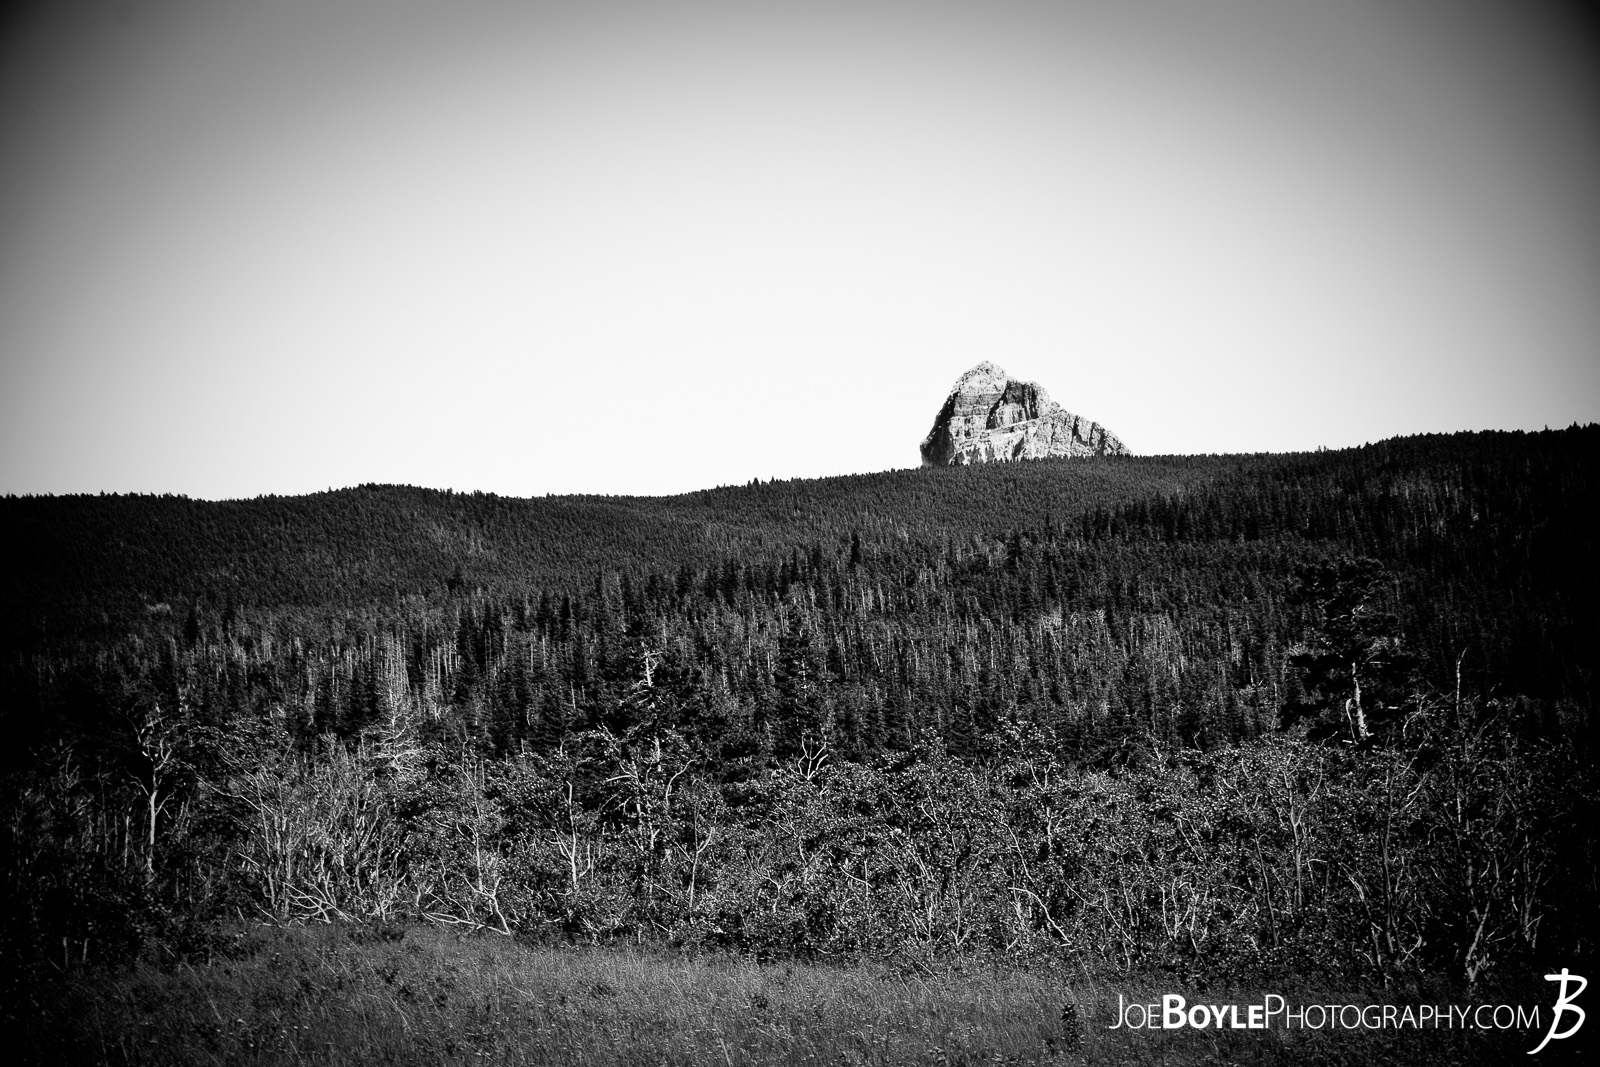 As I was hiking through Glacier National Park I stopped and looked up, (because I'm often staring at the ground making sure I don't step on a rock or twist my ankle), and I saw this iconic looking rock just sitting off in the distance.